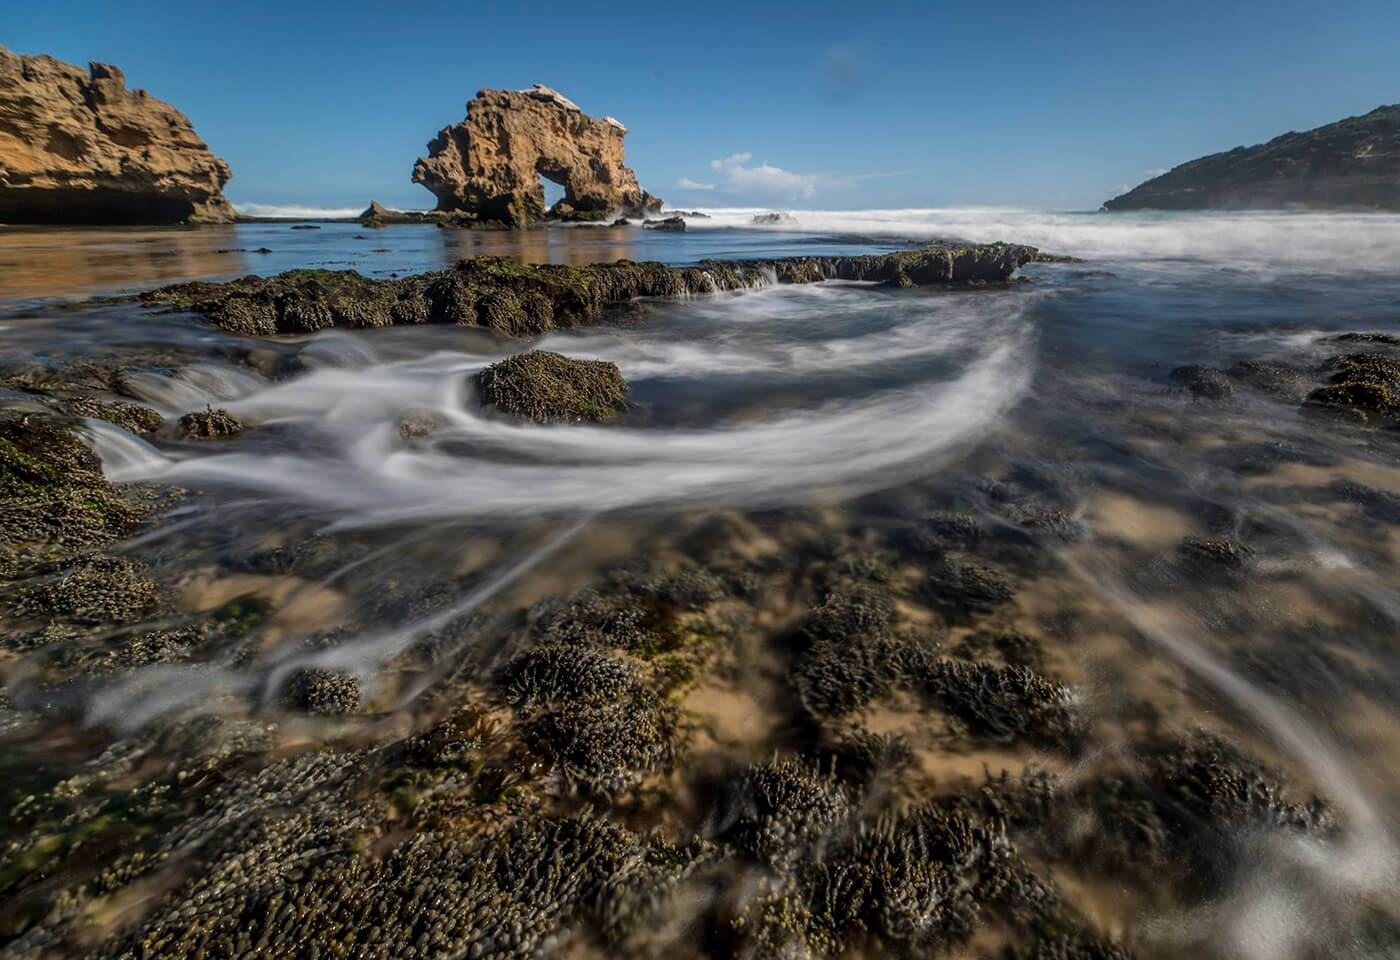 long exposure ocean landscapes image by Jay Collier